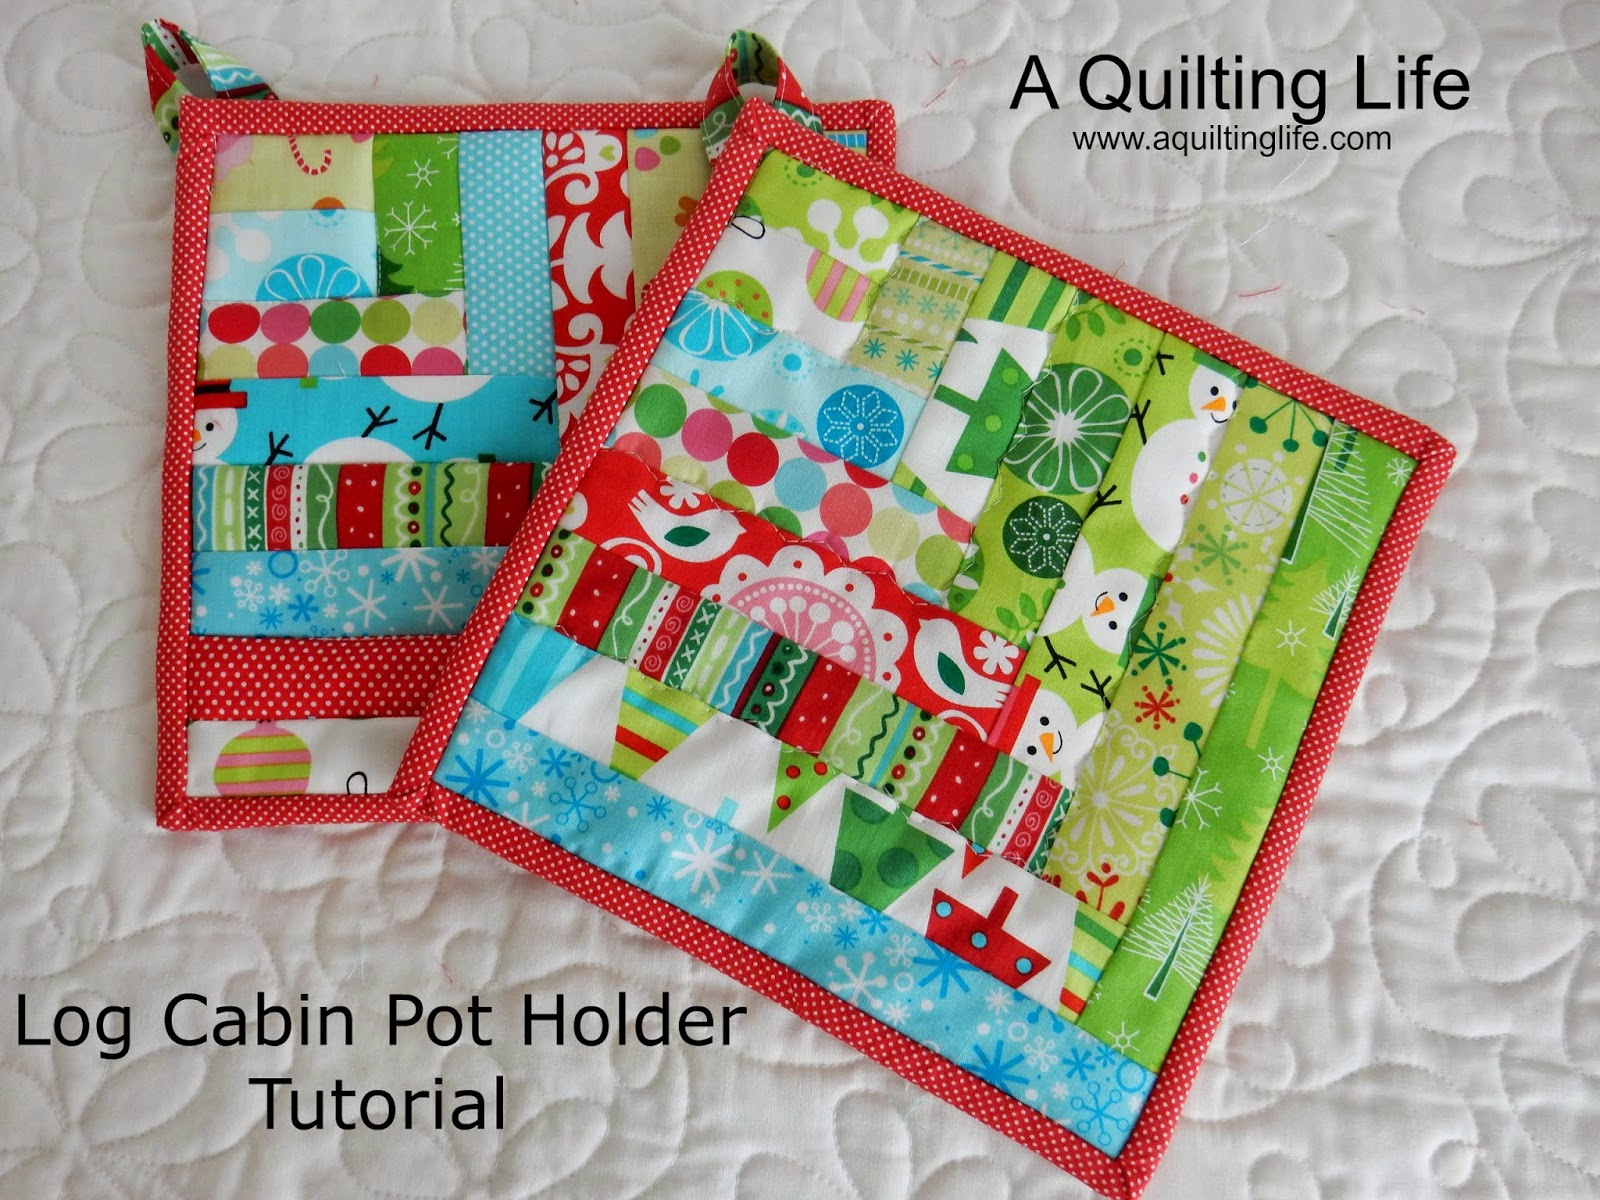 Log Cabin Pot Holder Tutorial | A Quilting Life - a quilt blog : quilted potholder pattern - Adamdwight.com